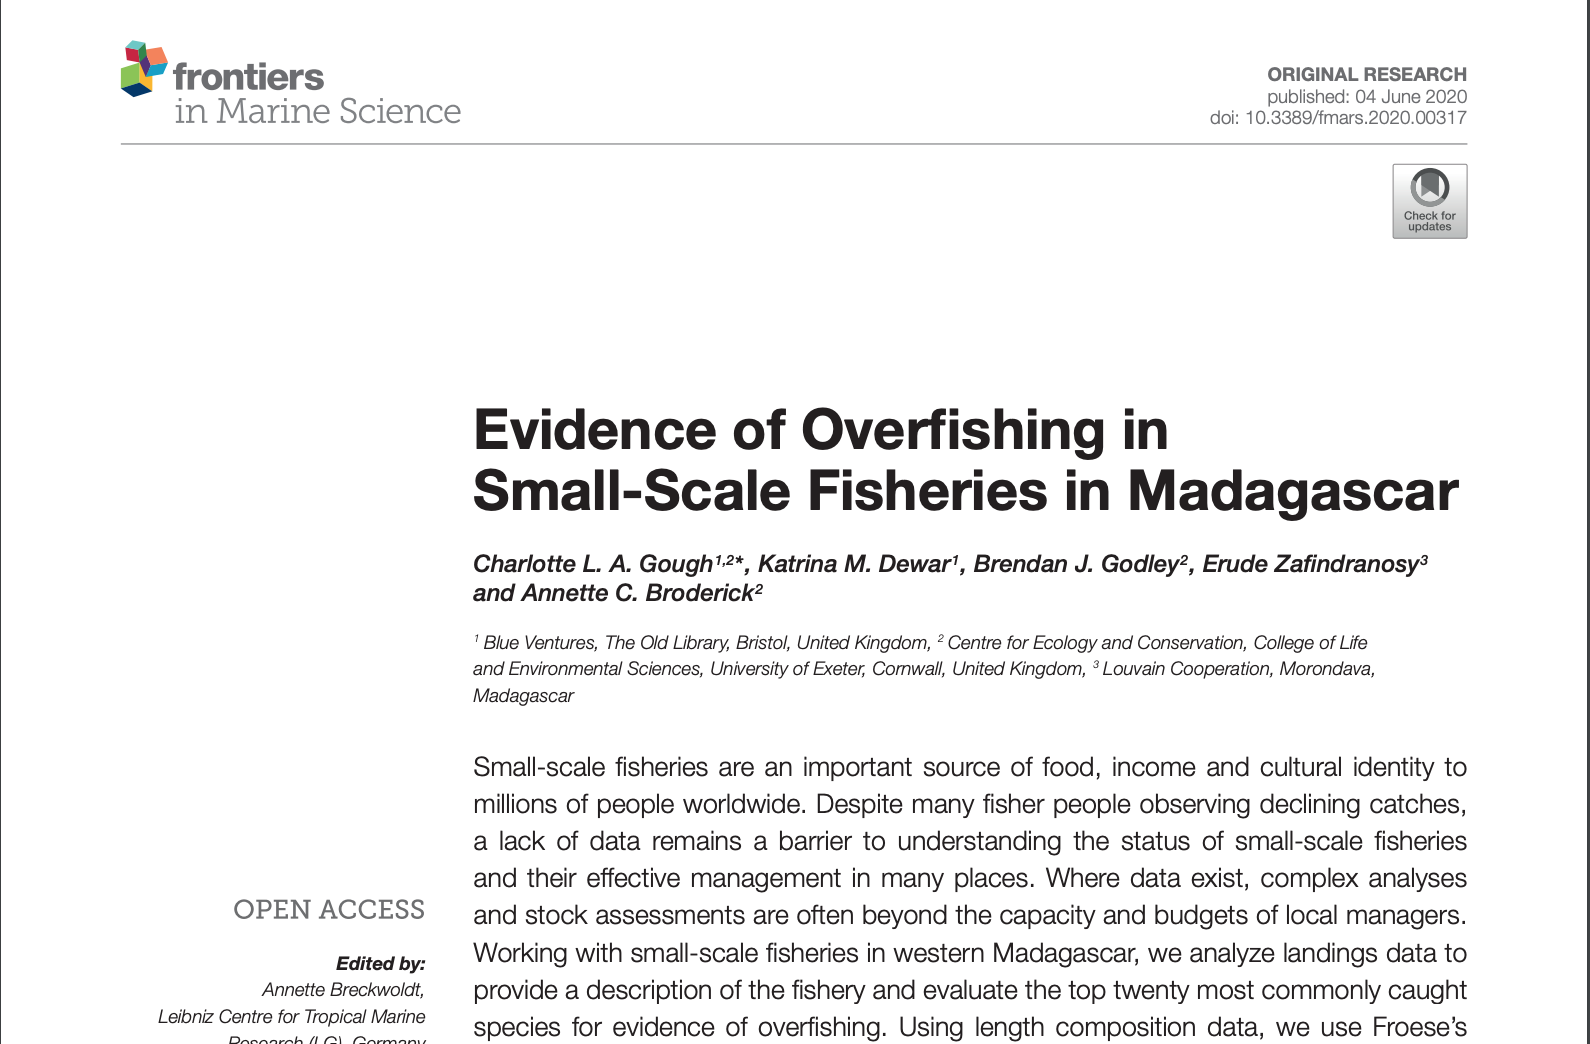 Evidence of Overfishing in Small-Scale Fisheries in Madagascar